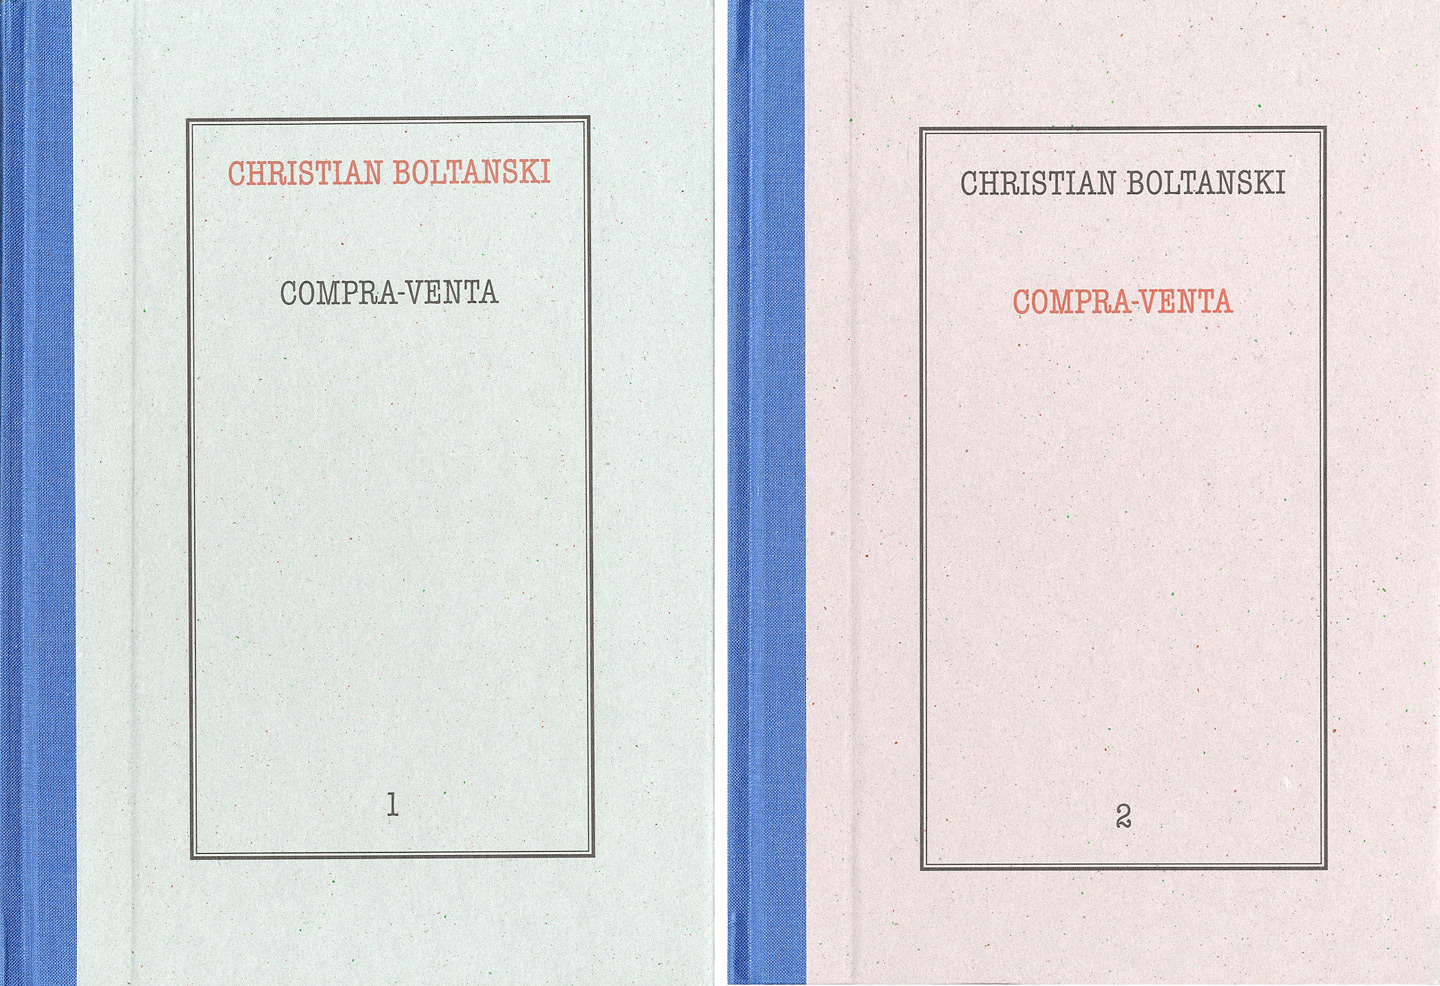 Christian Boltanski: Compra-Venta (Buy-Sell) (Two Volumes Slipcased)